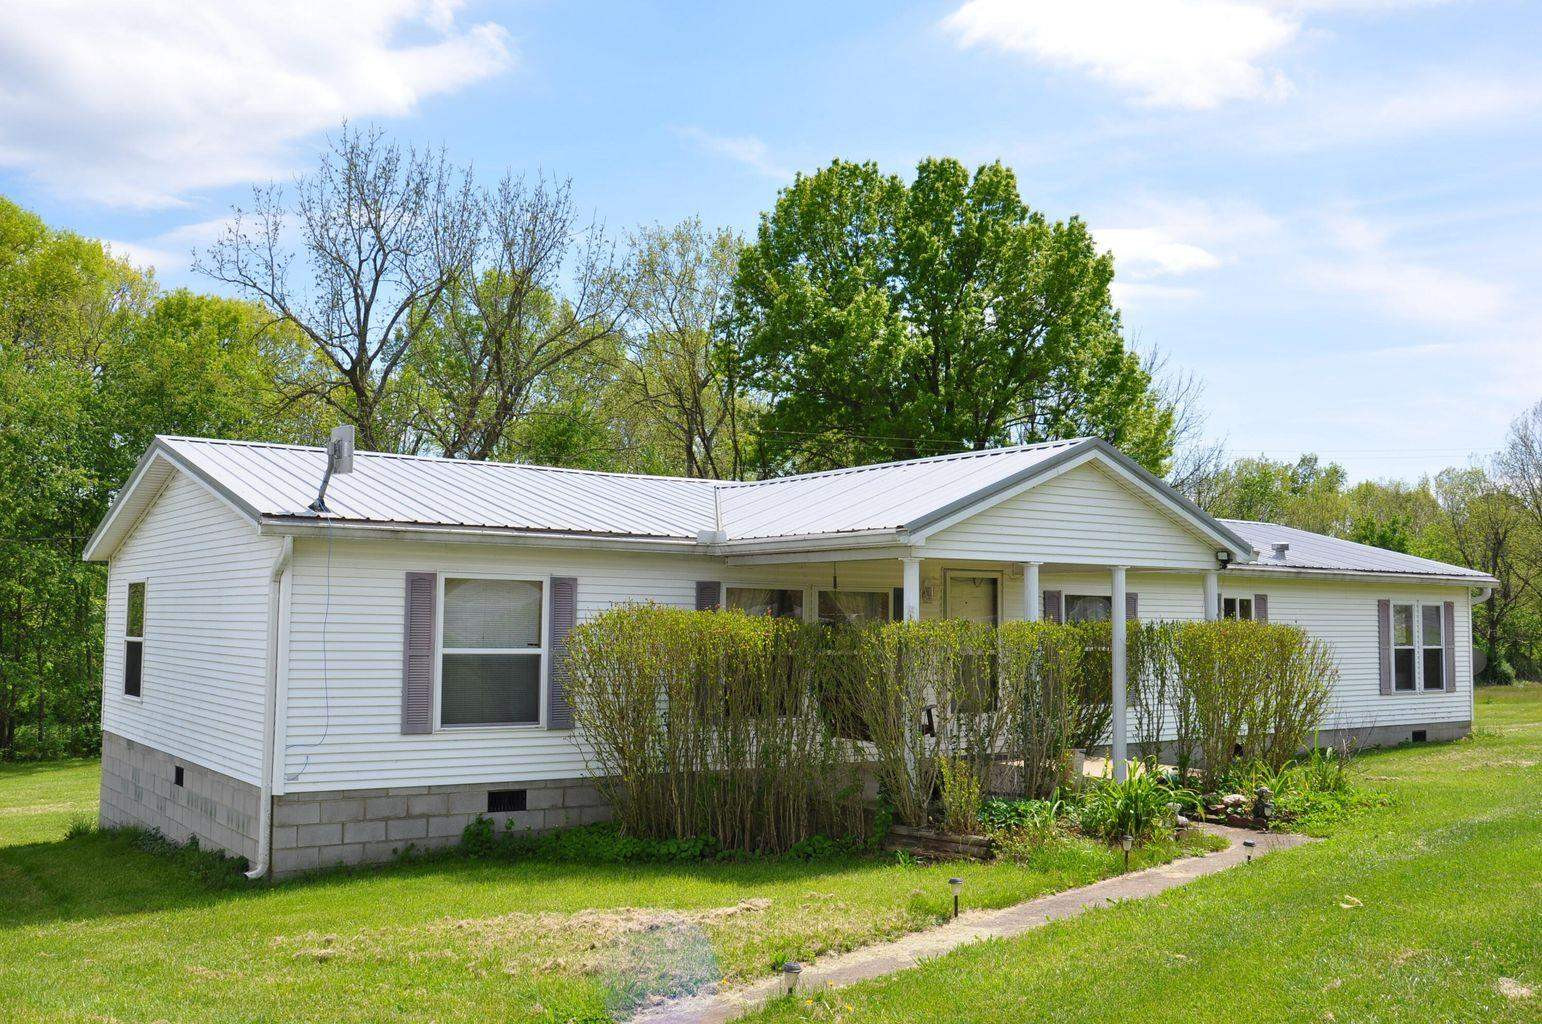 Photo 2 for 2812 Maysville Road Carlisle, KY 40311